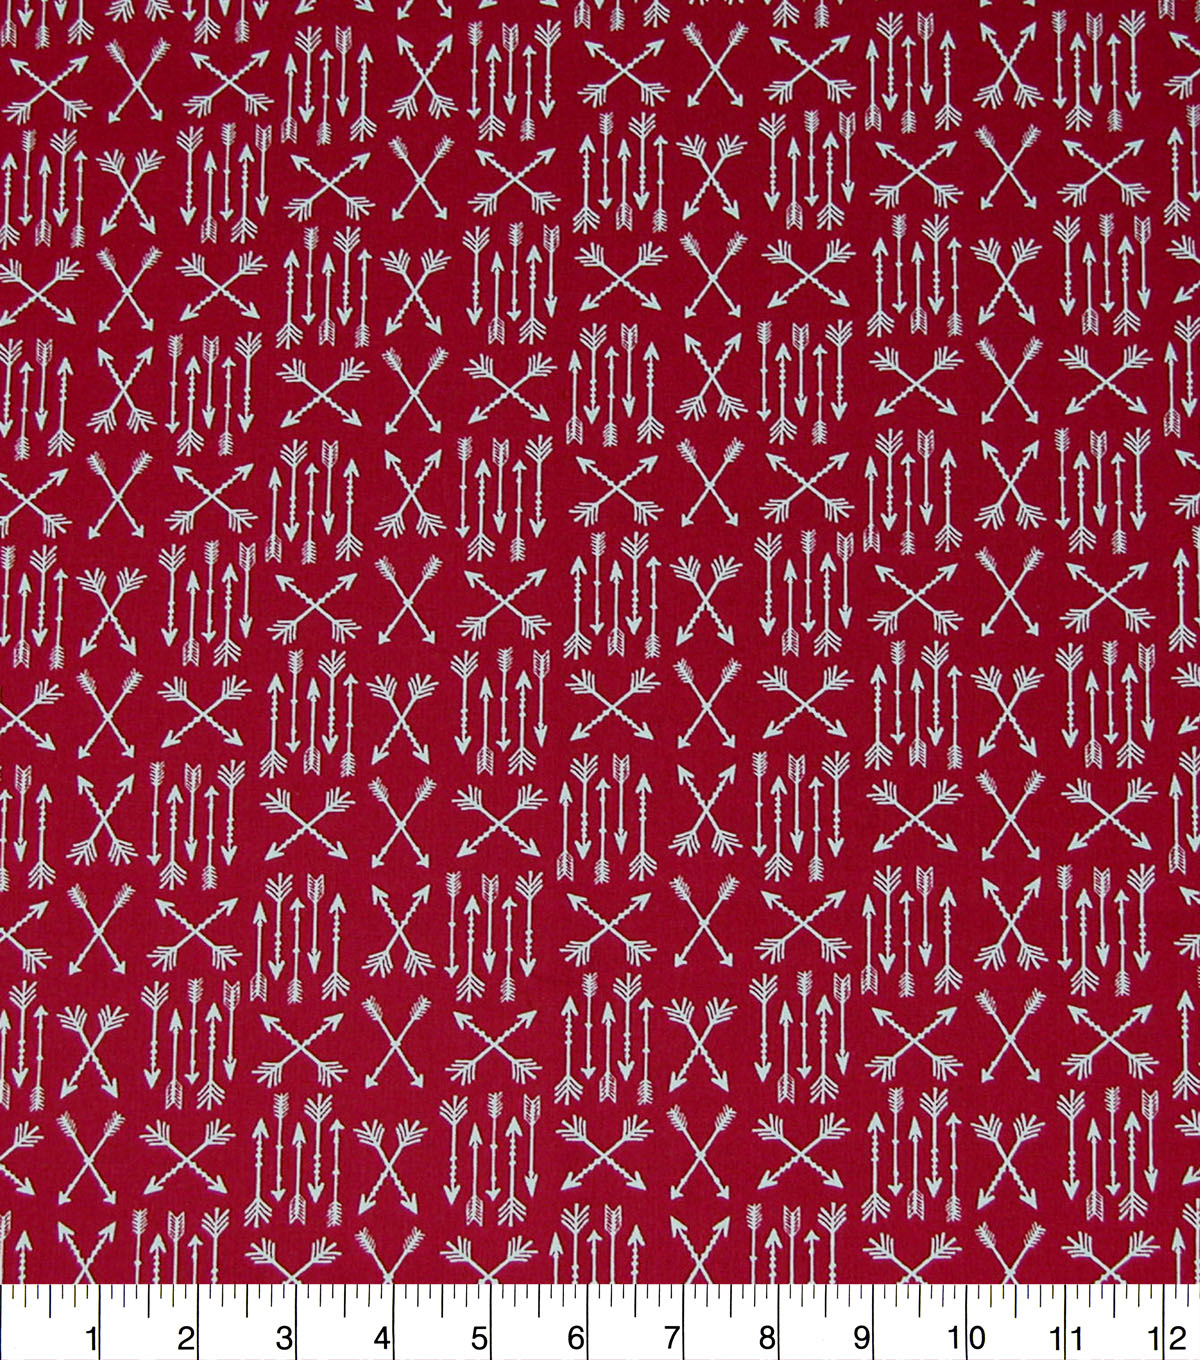 0bc874586 Quilter's Showcase Cotton Fabric-Red Arrow Patches   JOANN